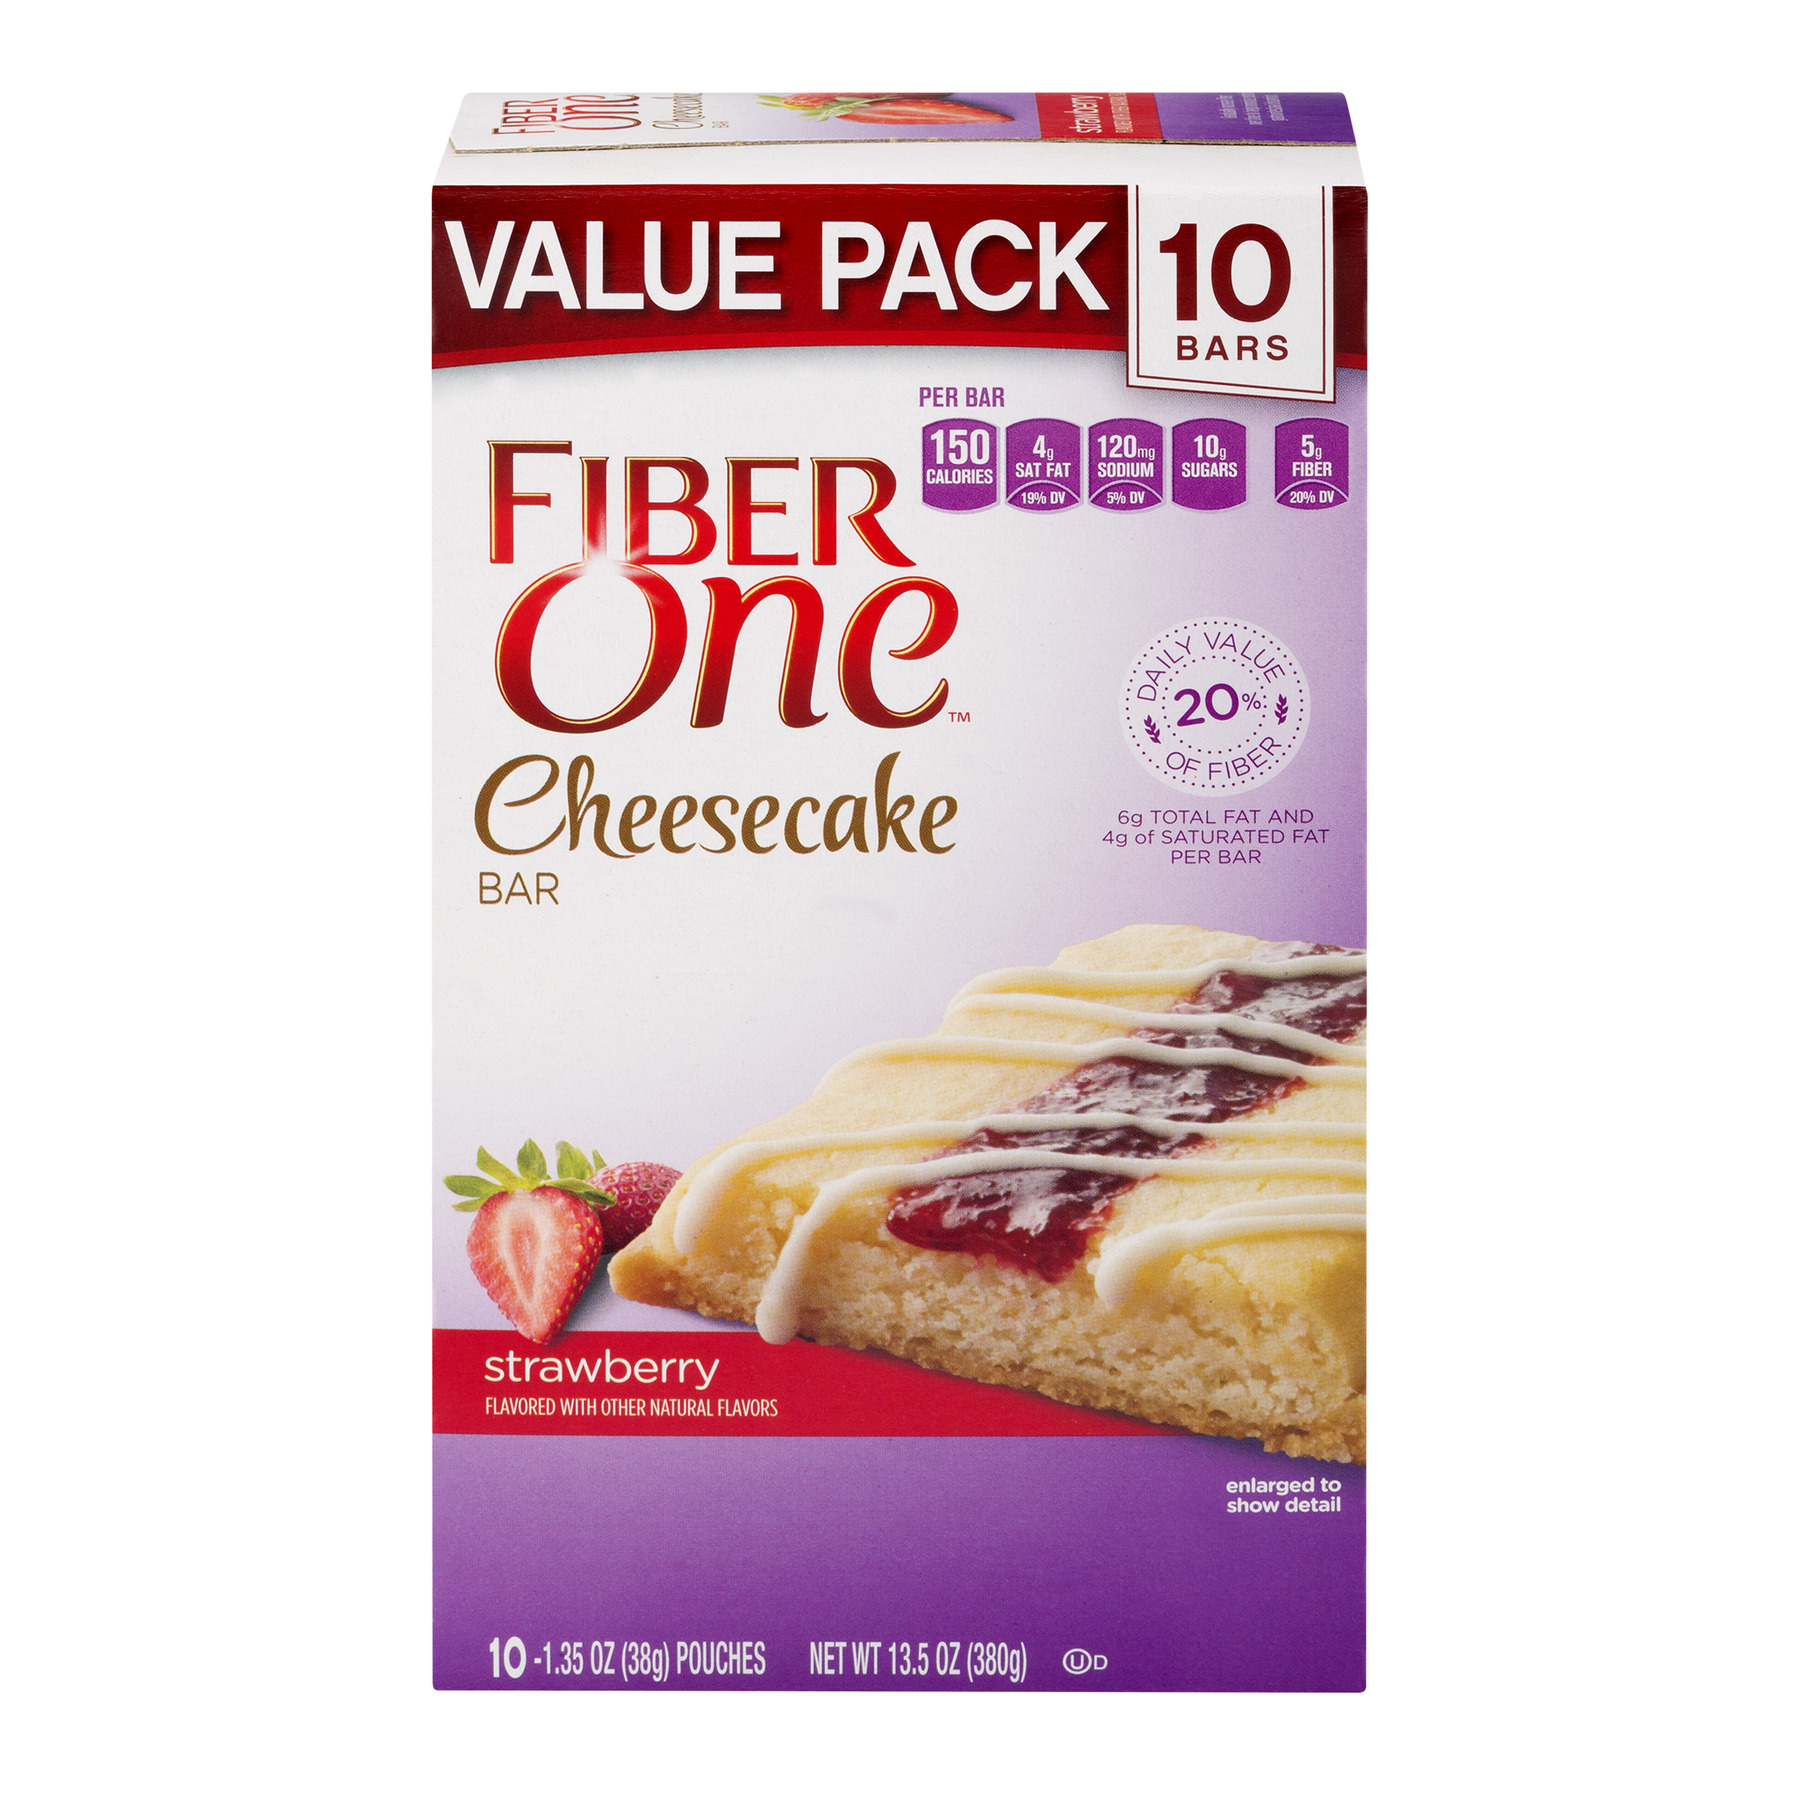 Fiber One Strawberry Cheesecake Value Pack 10ct 13.5 oz Box